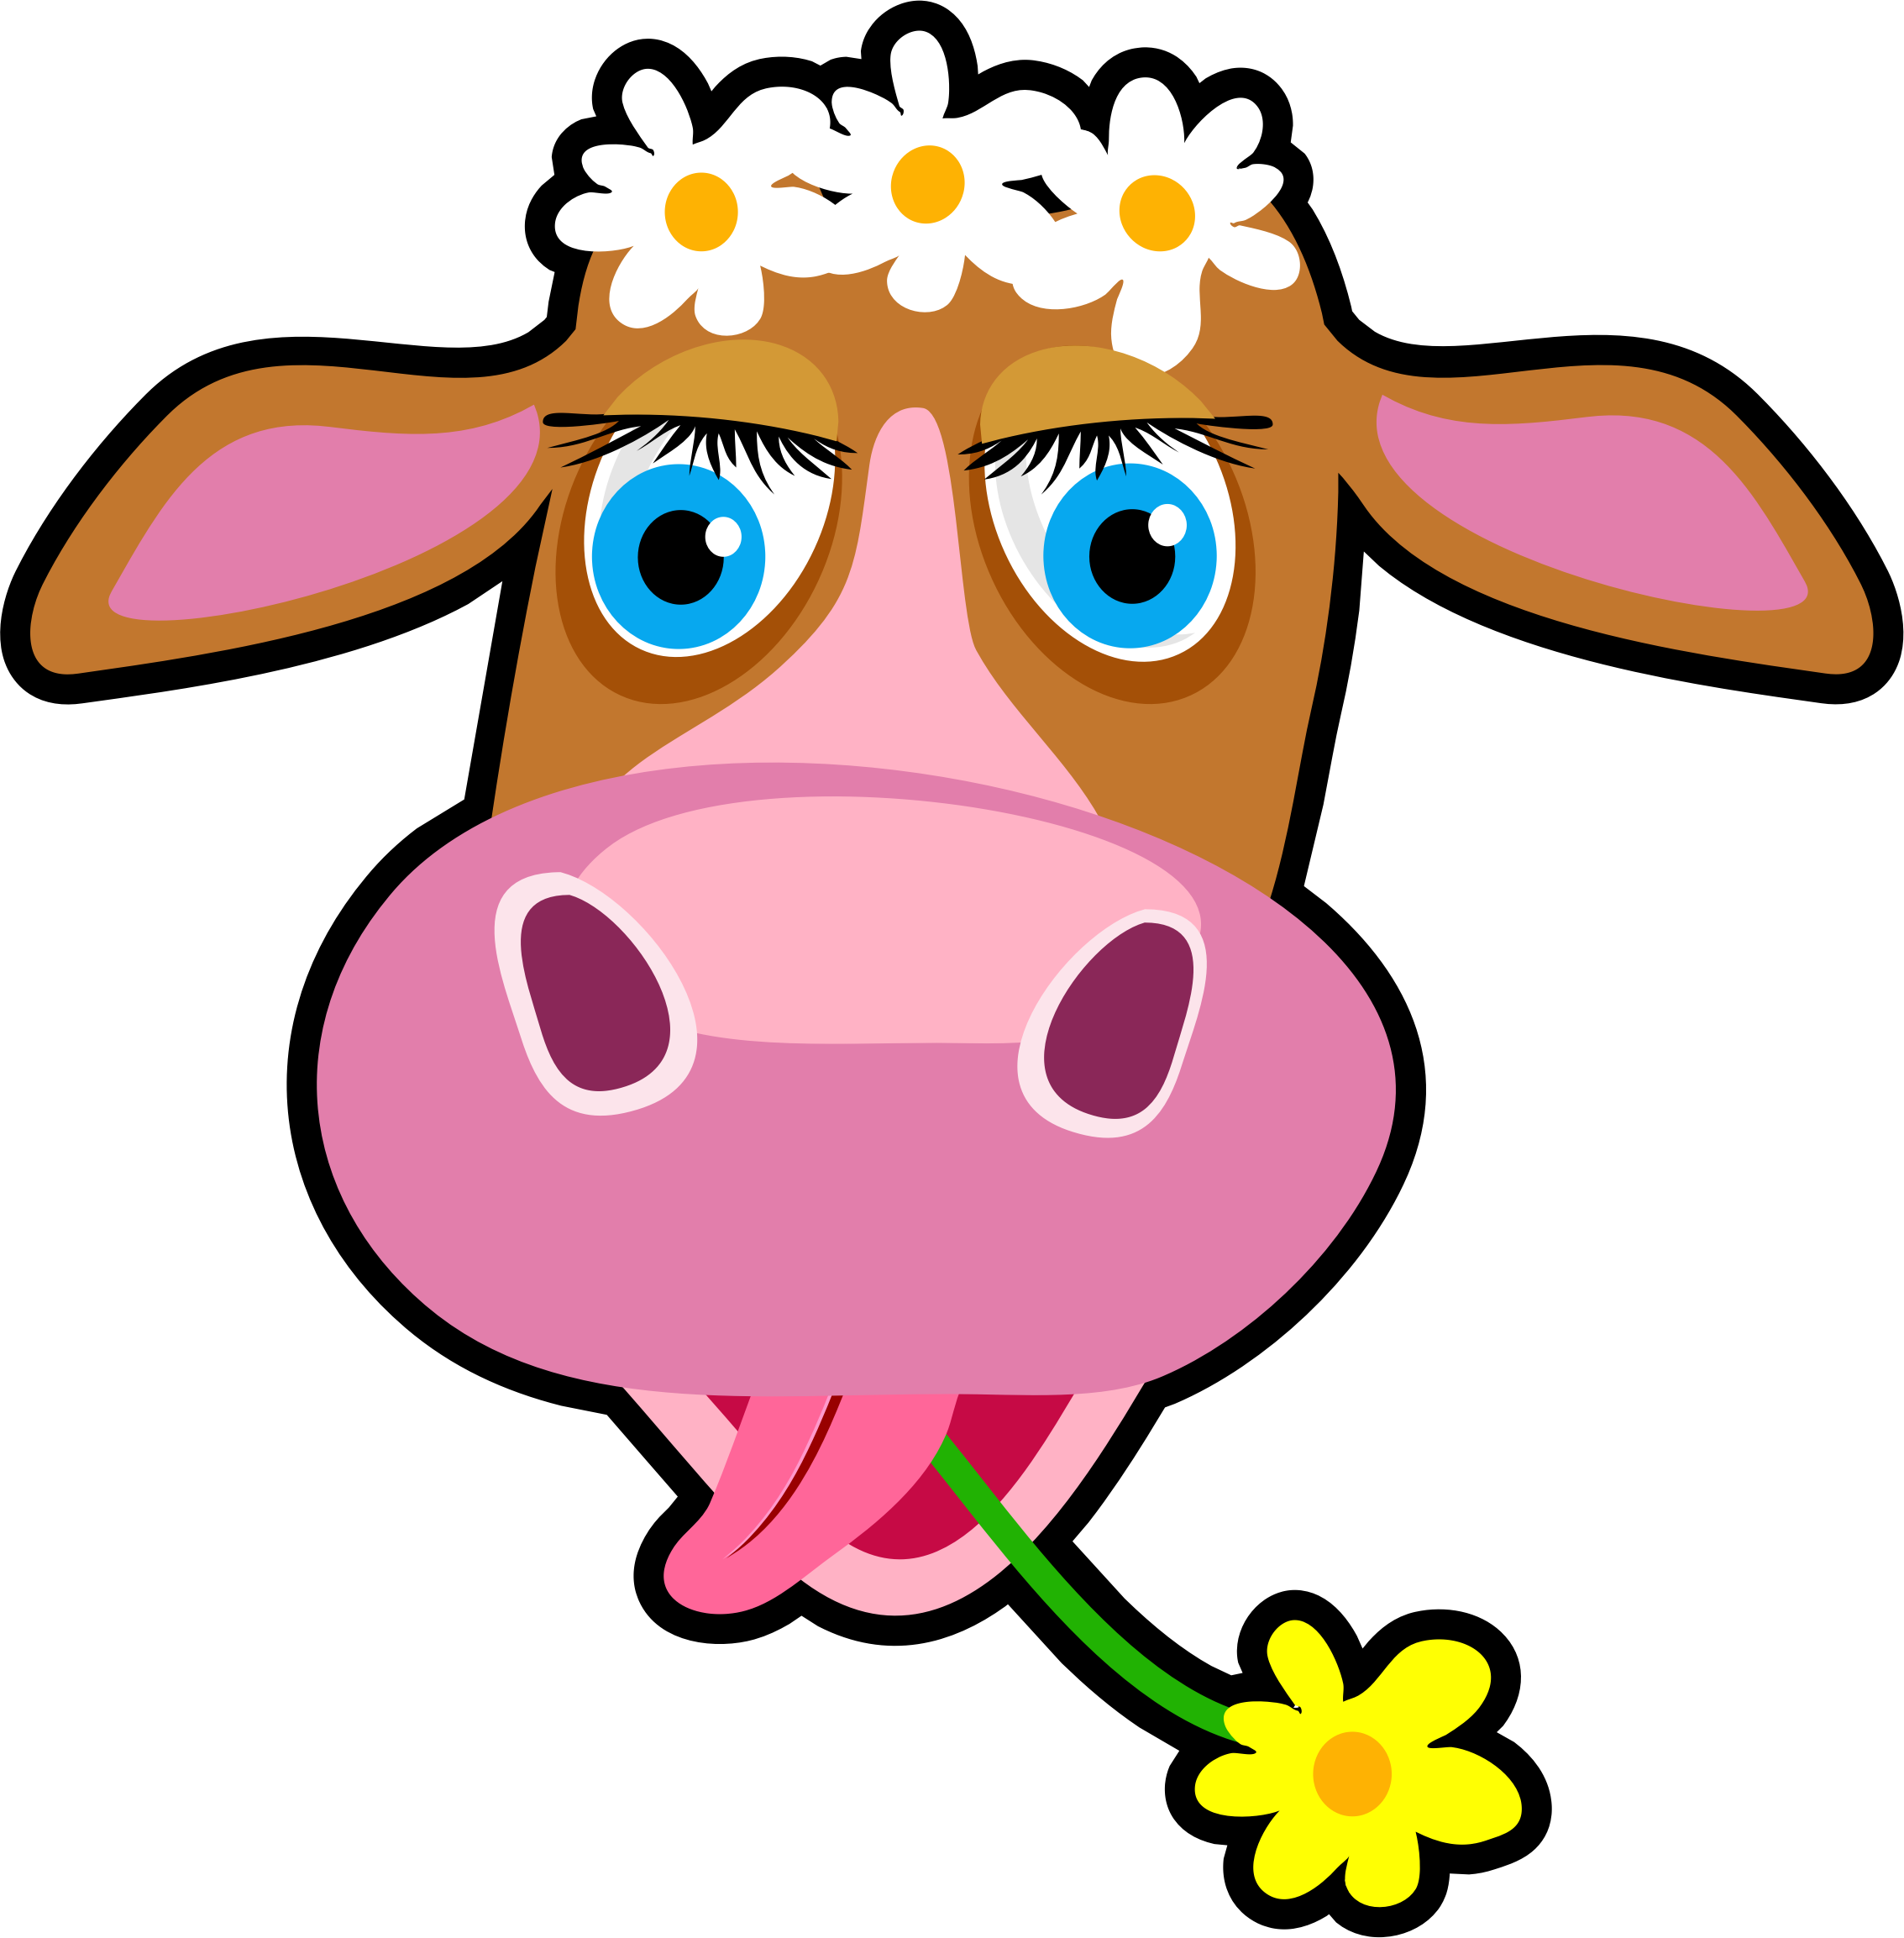 Christmas cow clipart jpg library download Clipart - Daisy the Cow jpg library download